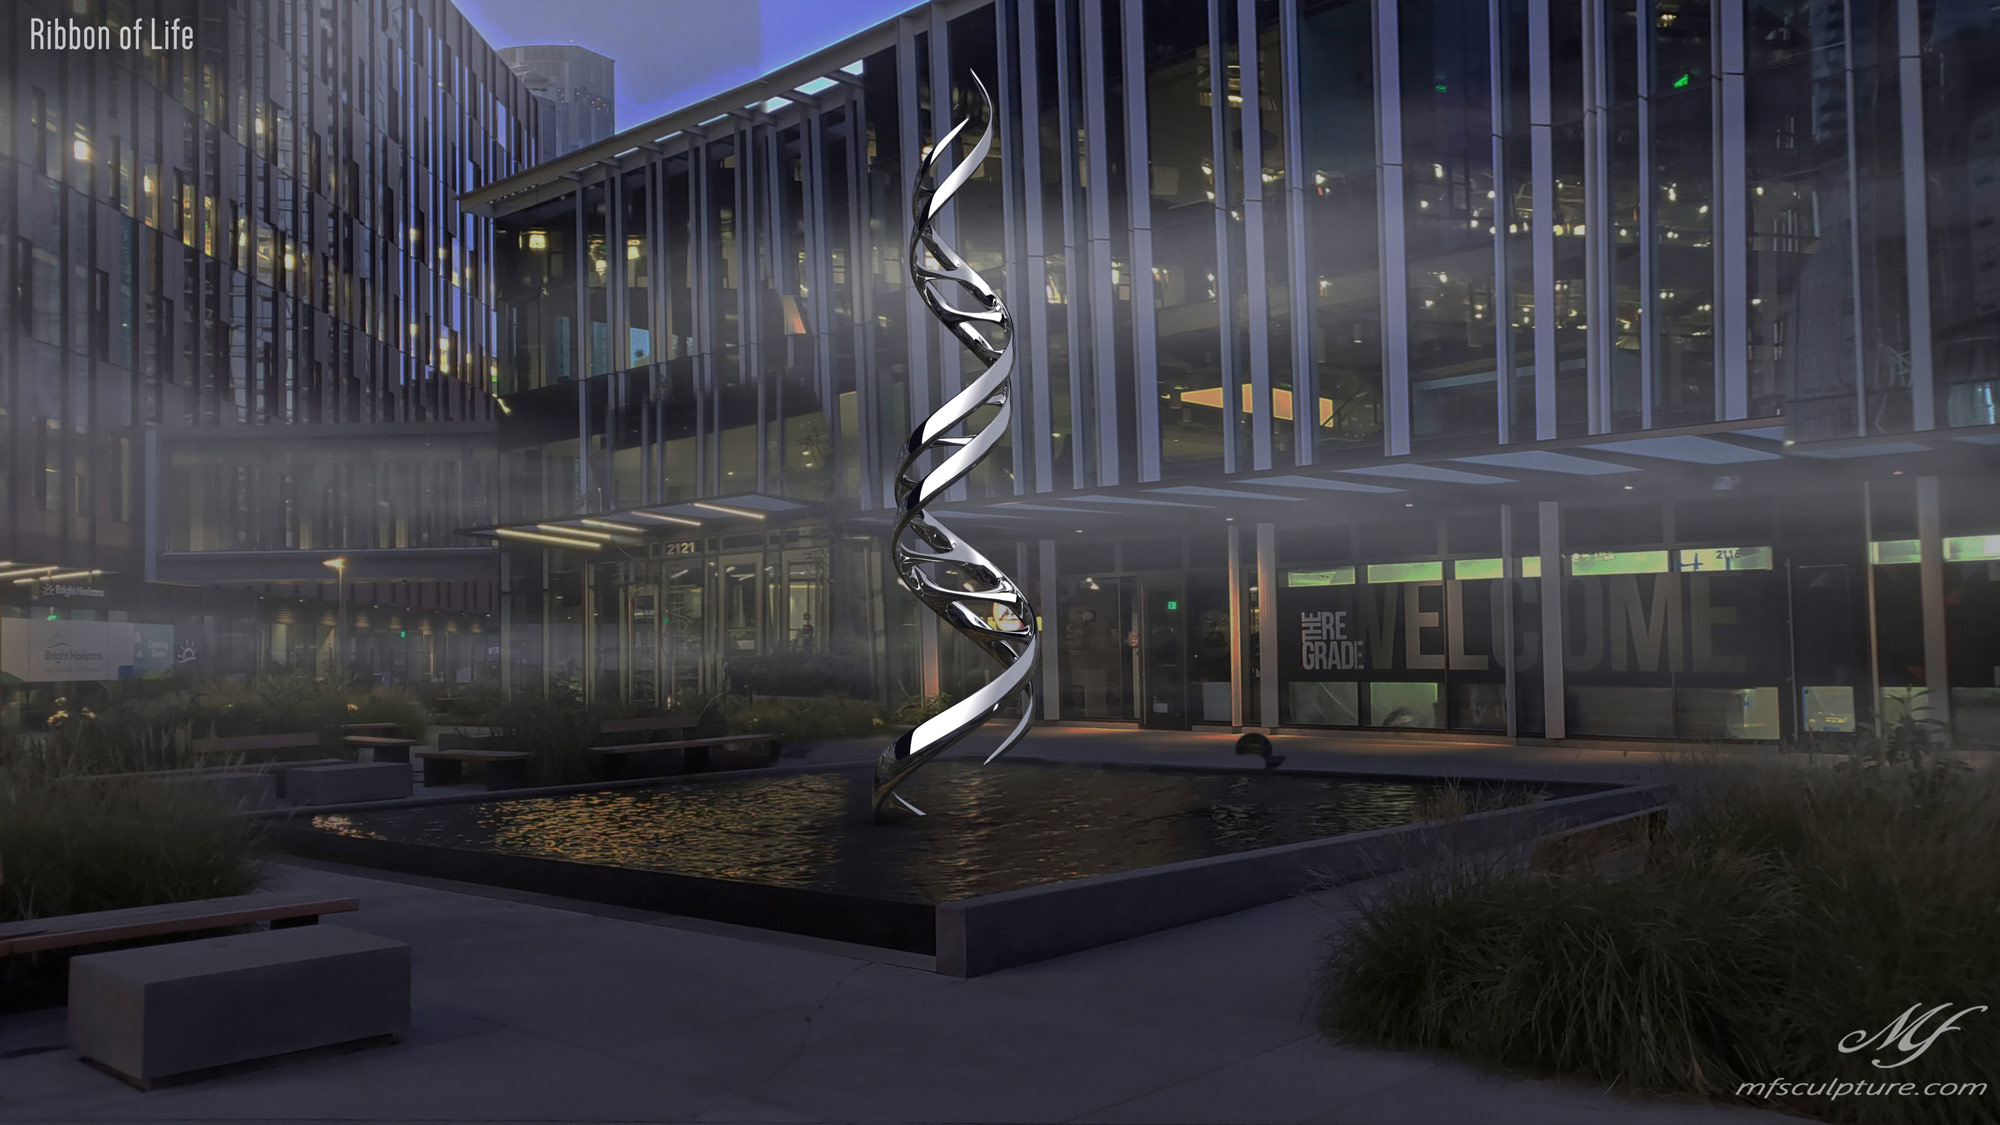 DNA Double Helix Sculpture Contemporary Biology 3